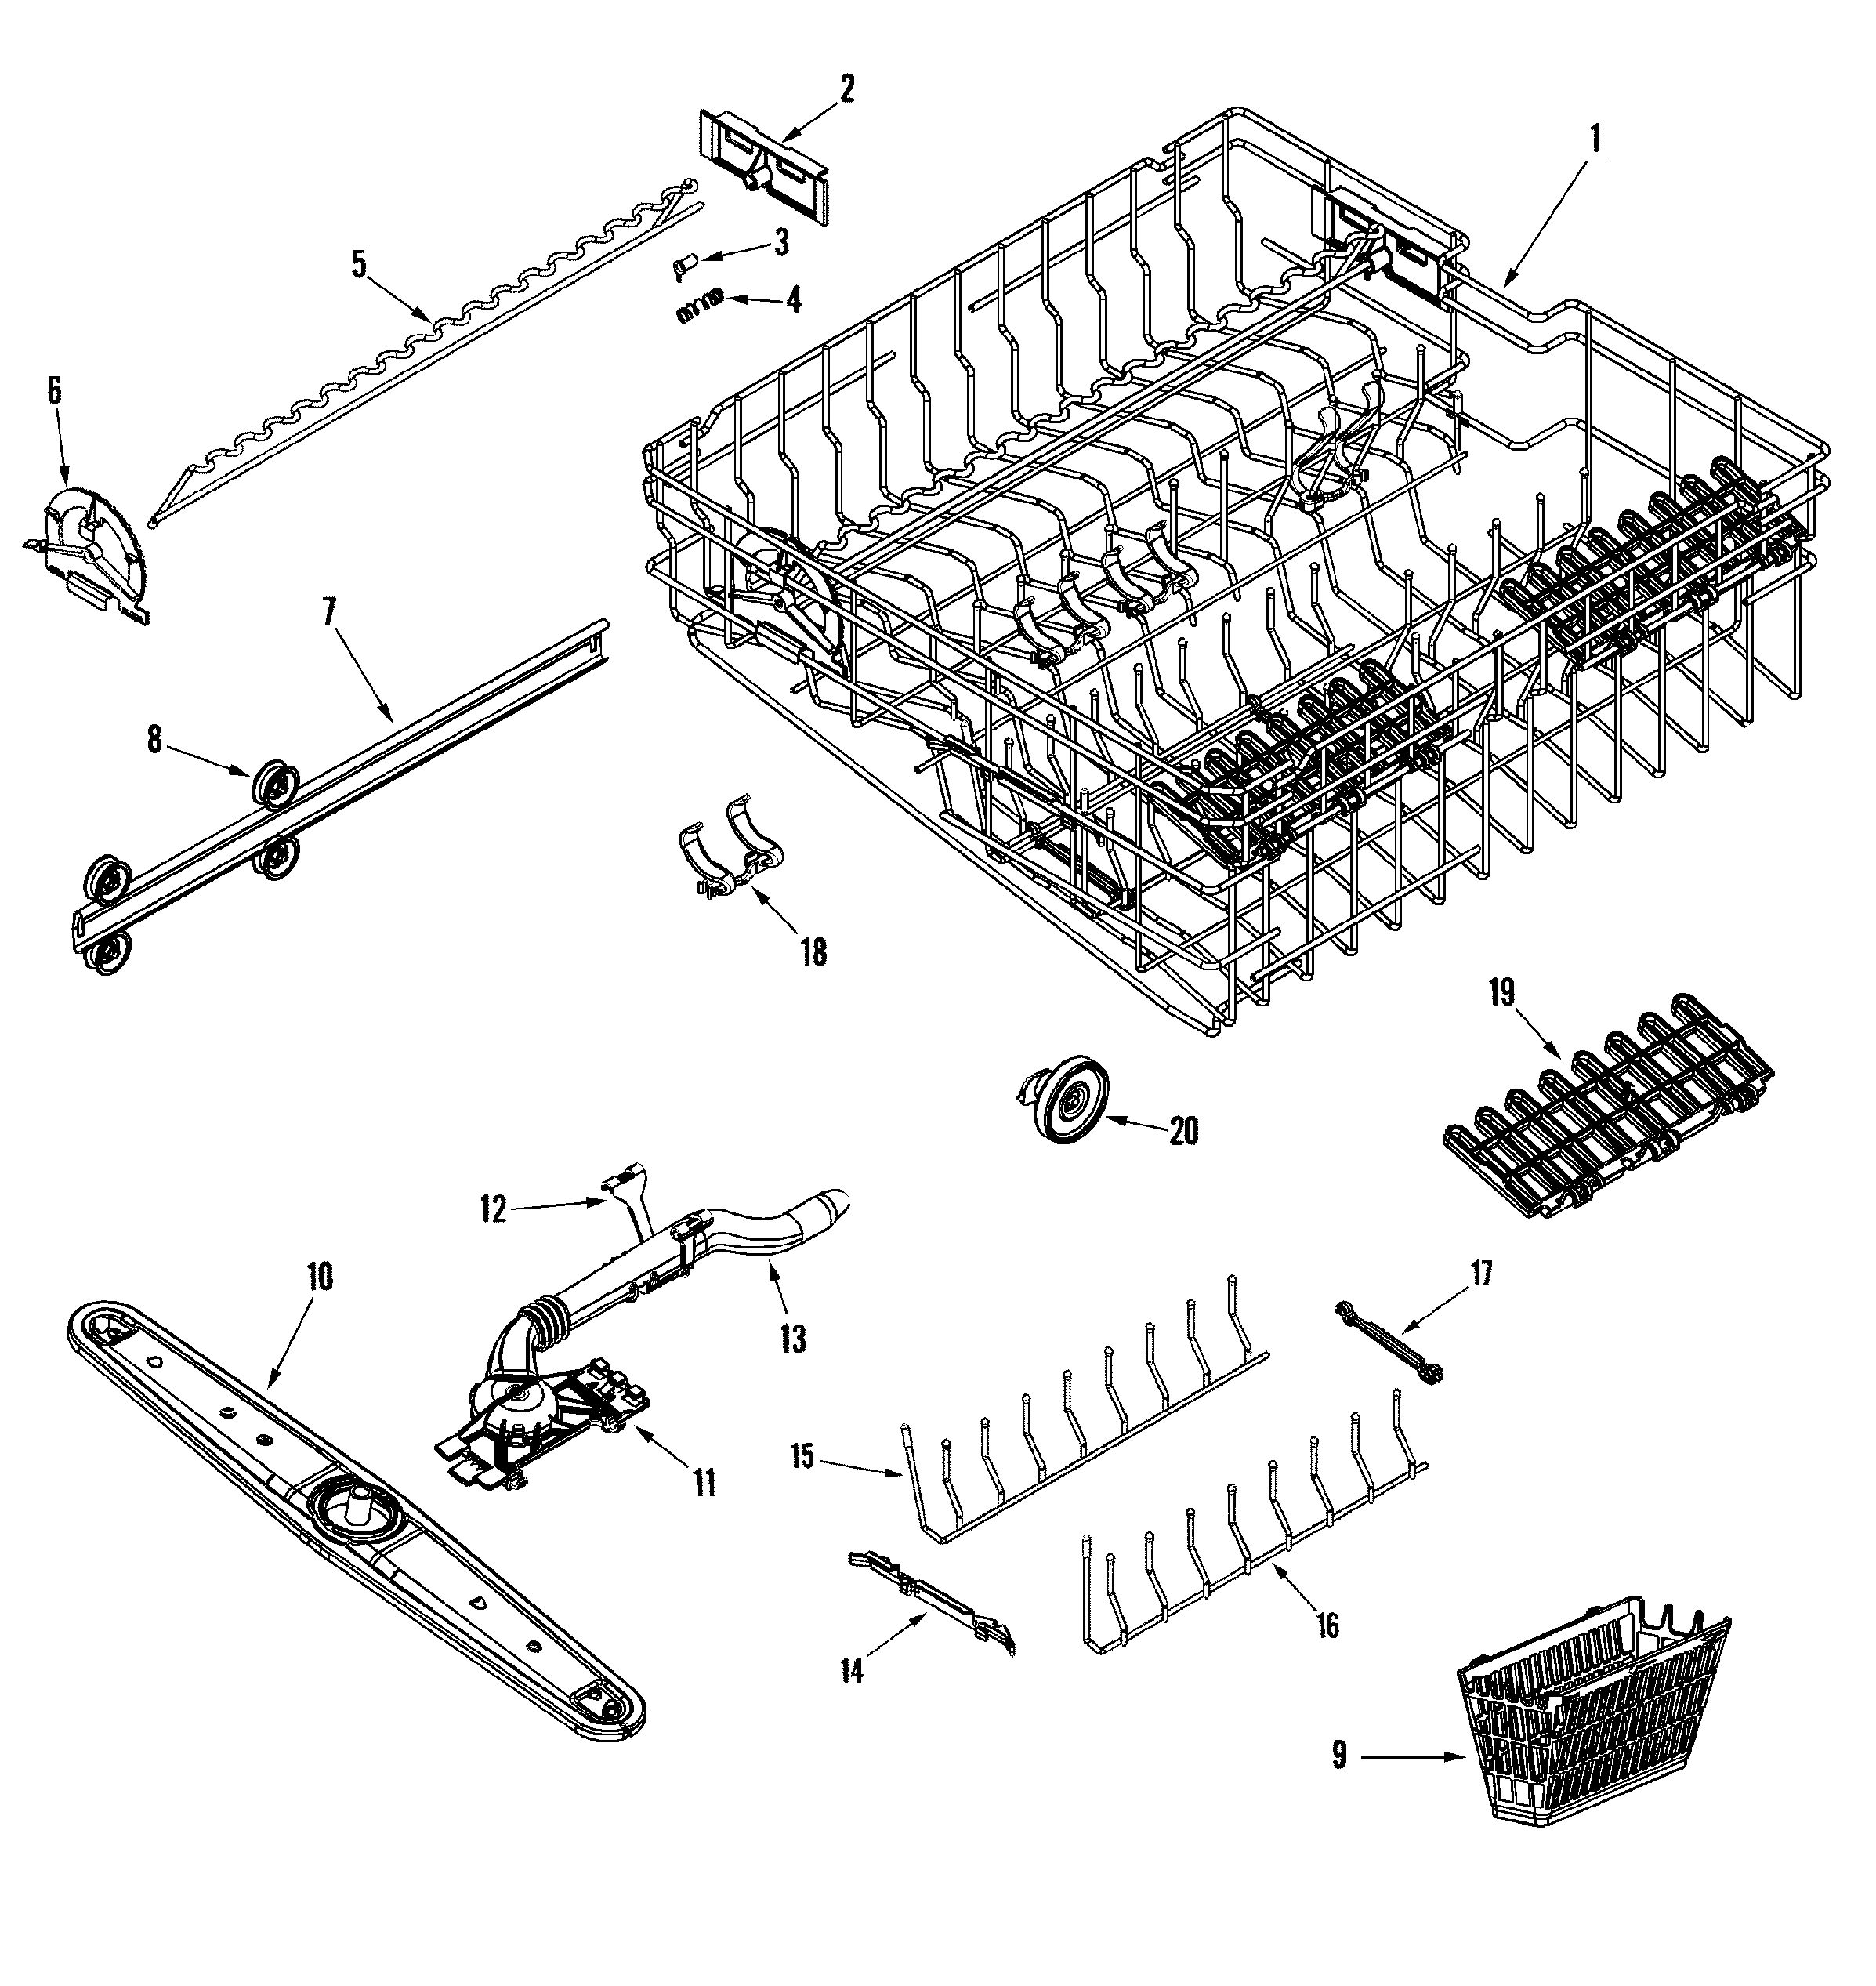 Maytag: Maytag Dishwasher Parts Diagram